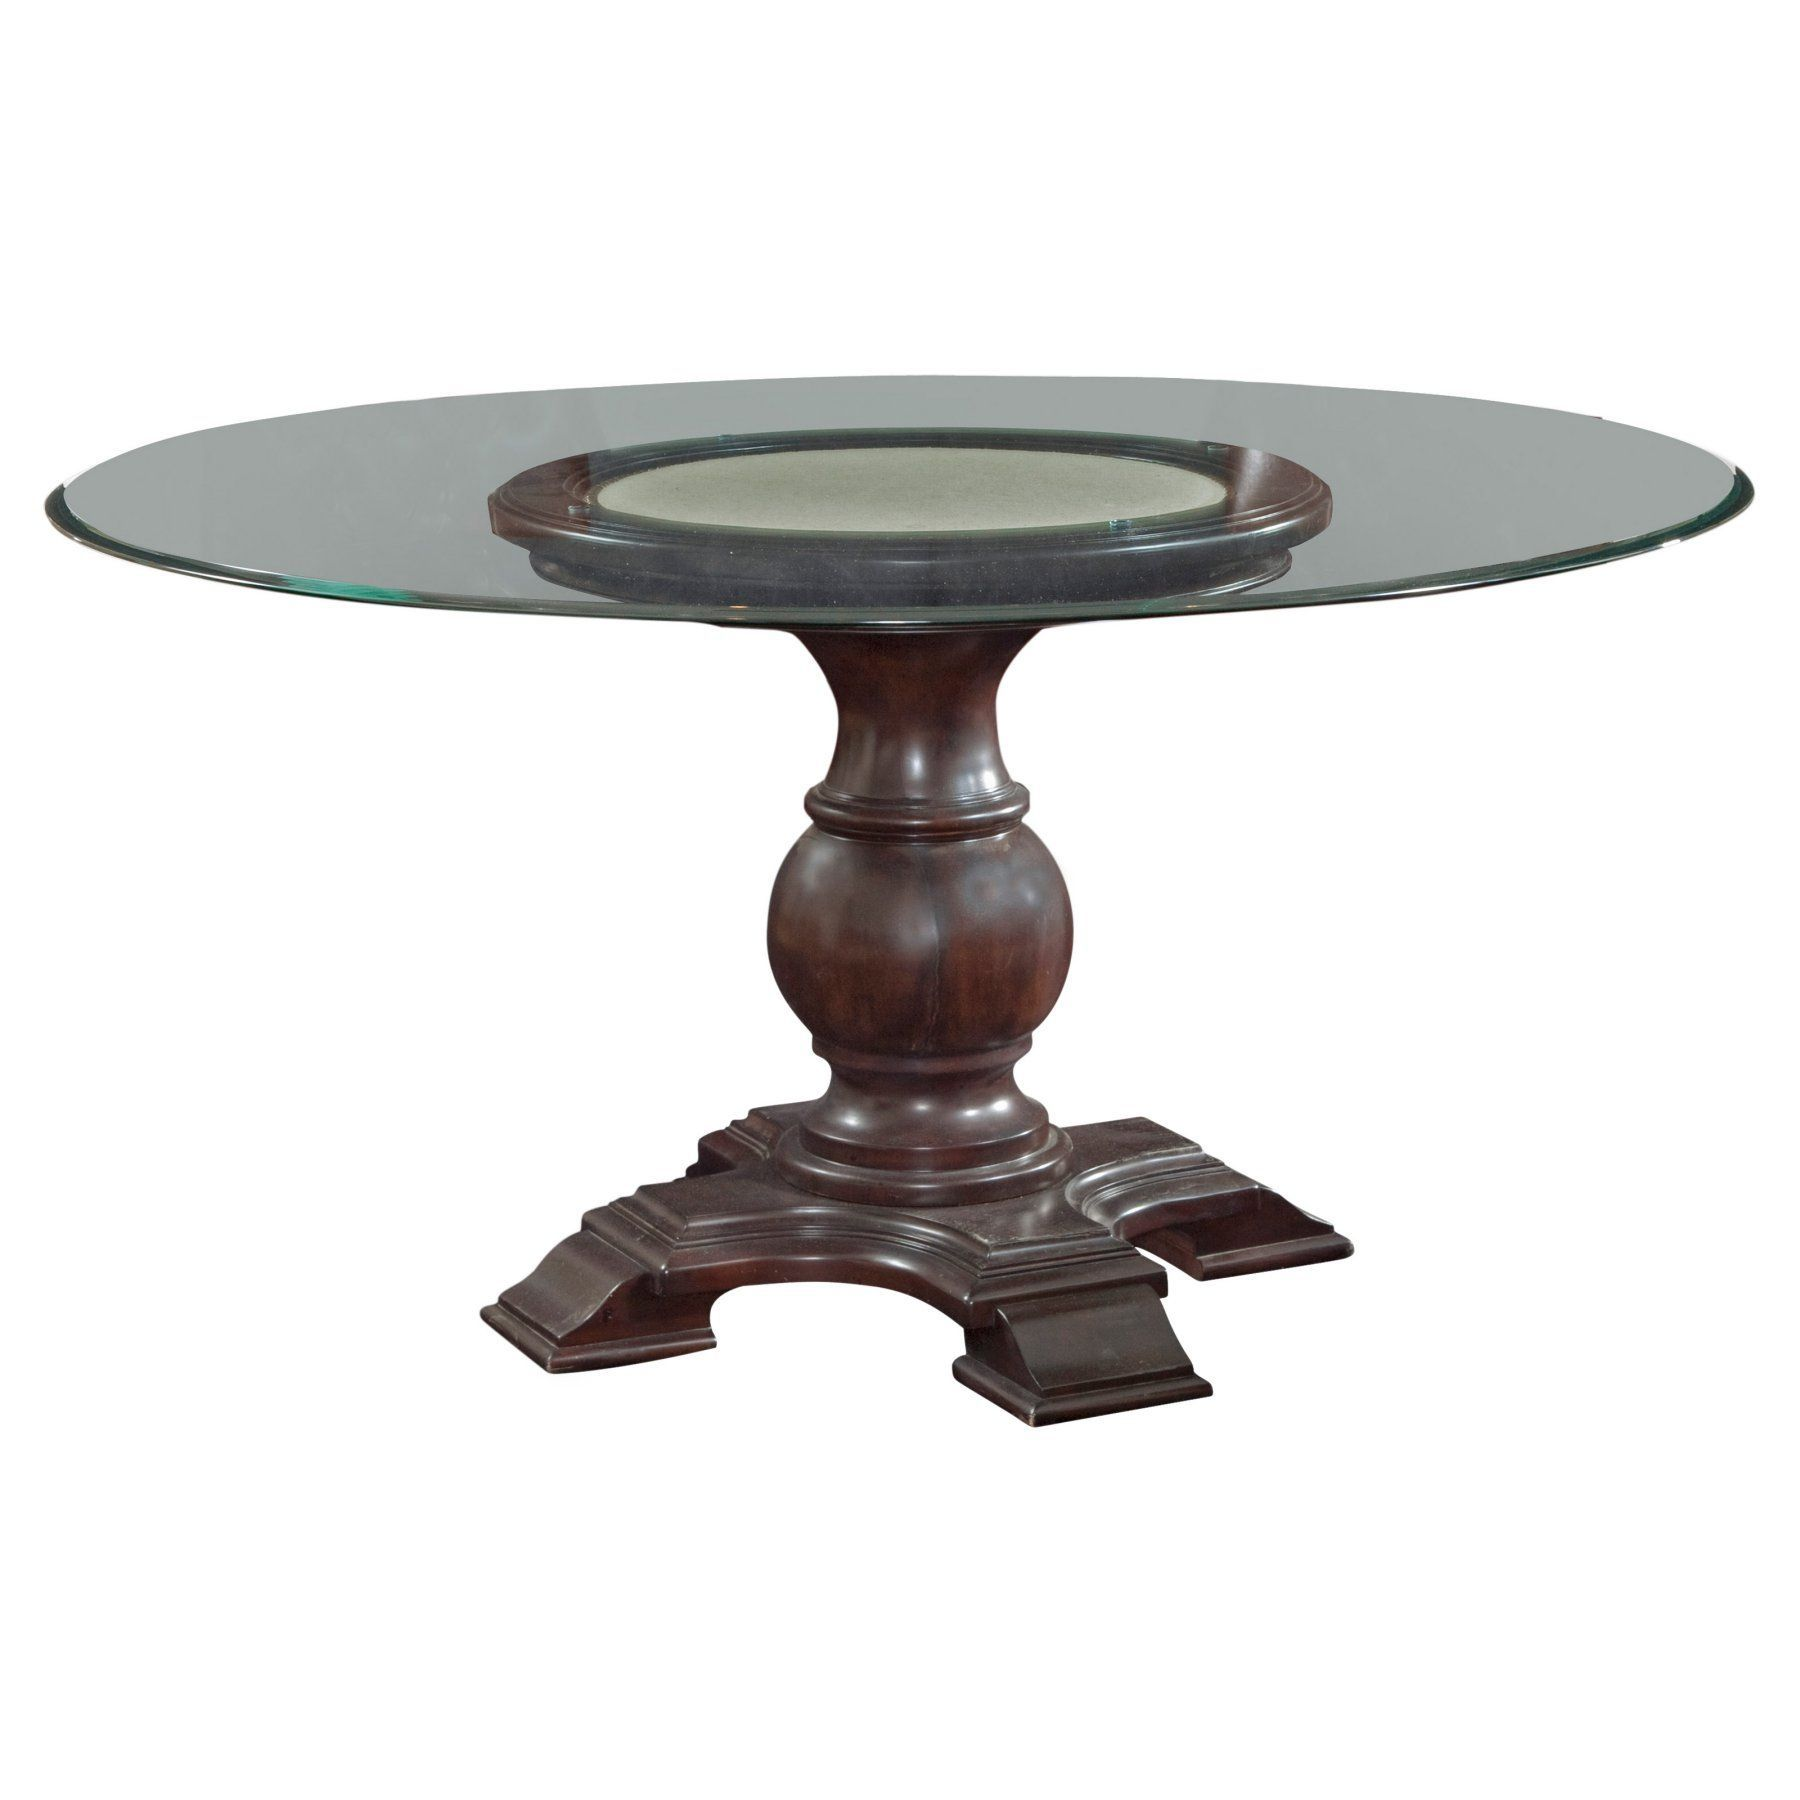 bassett mirror dining table. Bassett Mirror Hampton Dining Table - D2619-700-045EC A